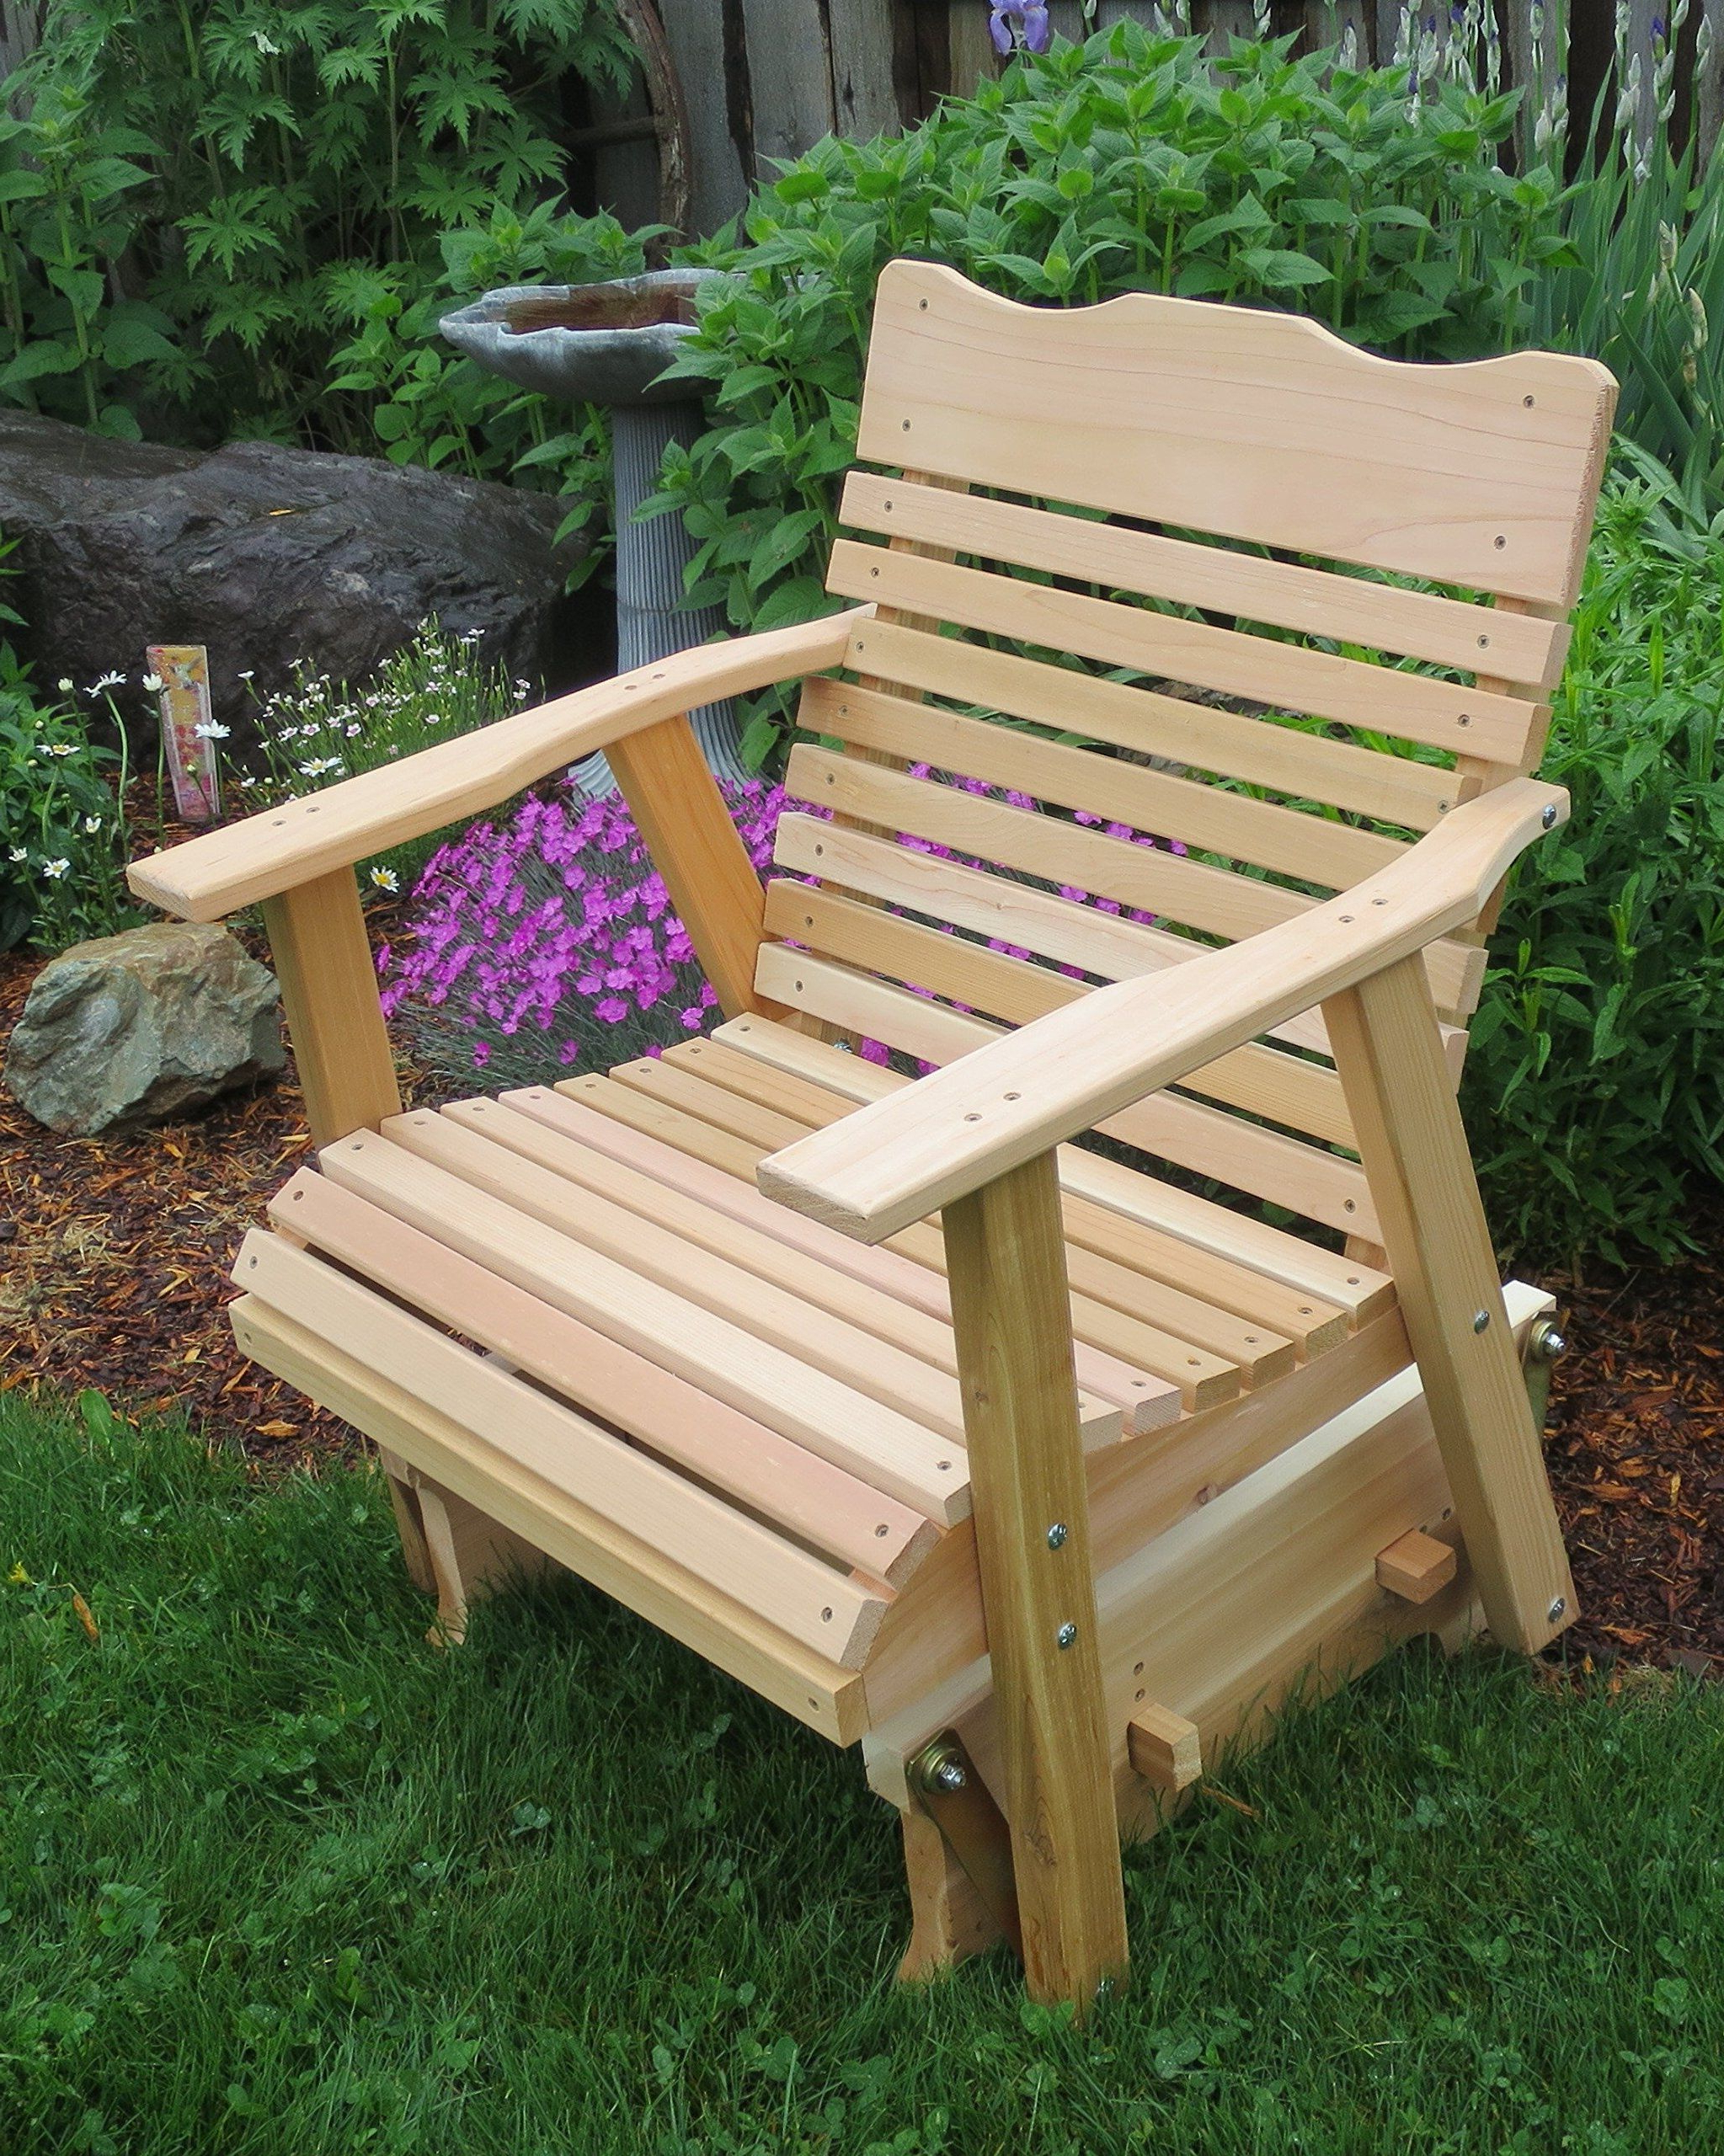 Preferred 2 Person Natural Cedar Wood Outdoor Gliders Inside 2 Natural Cedar Porch Glider Amish Crafted ** Be Sure To (Gallery 1 of 25)